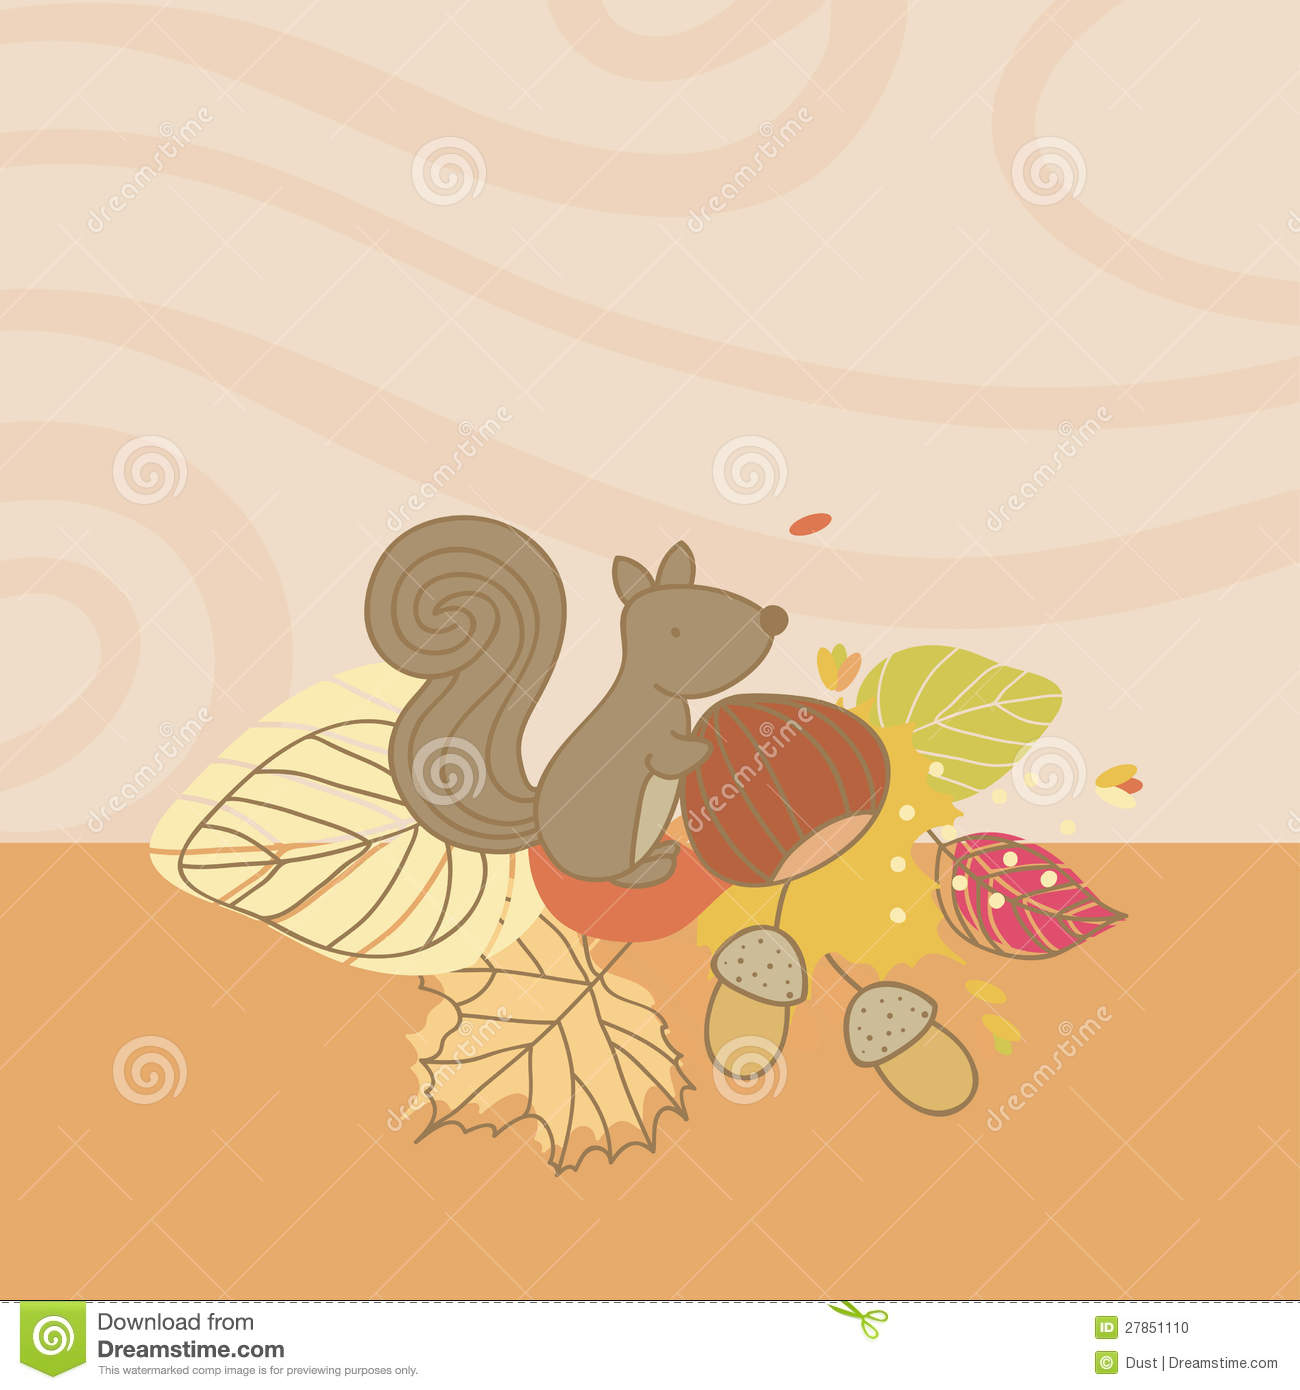 Autumn Card with Squirrel